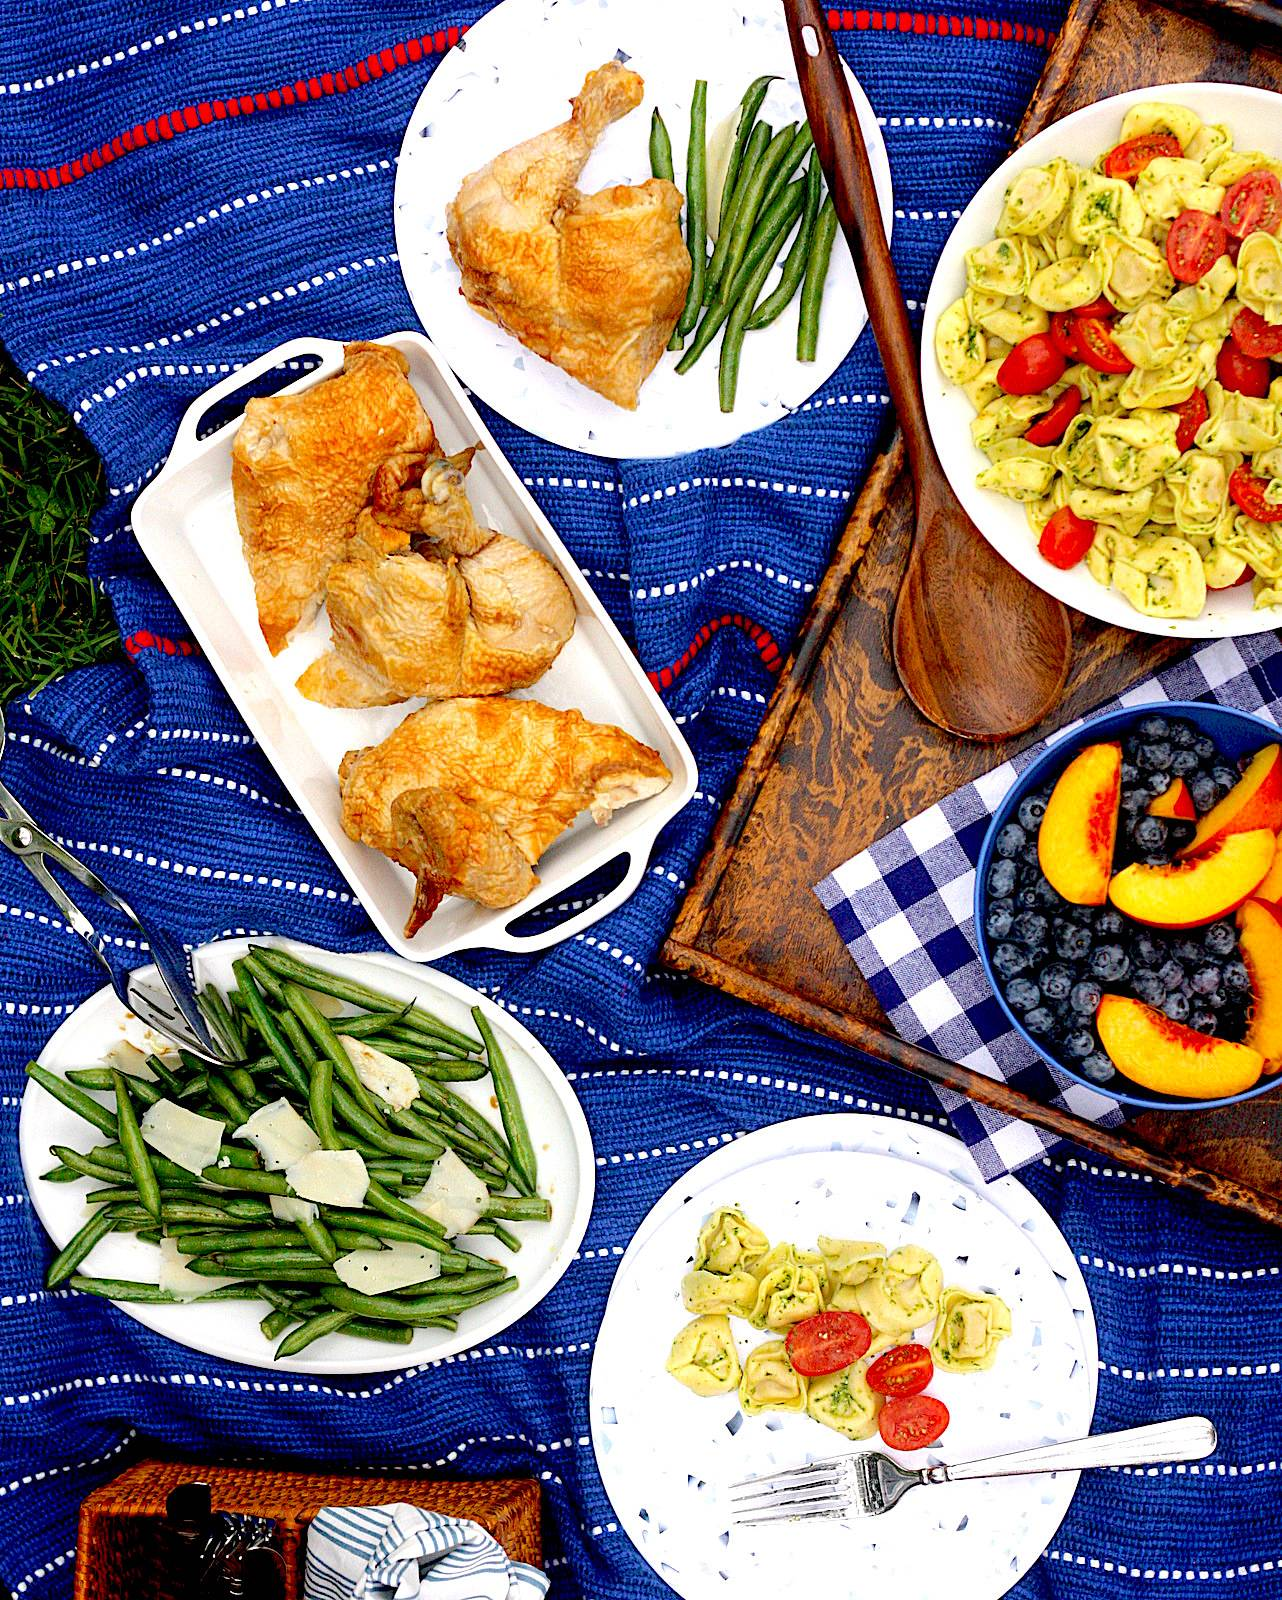 Picnic spread on a blanket on the grass